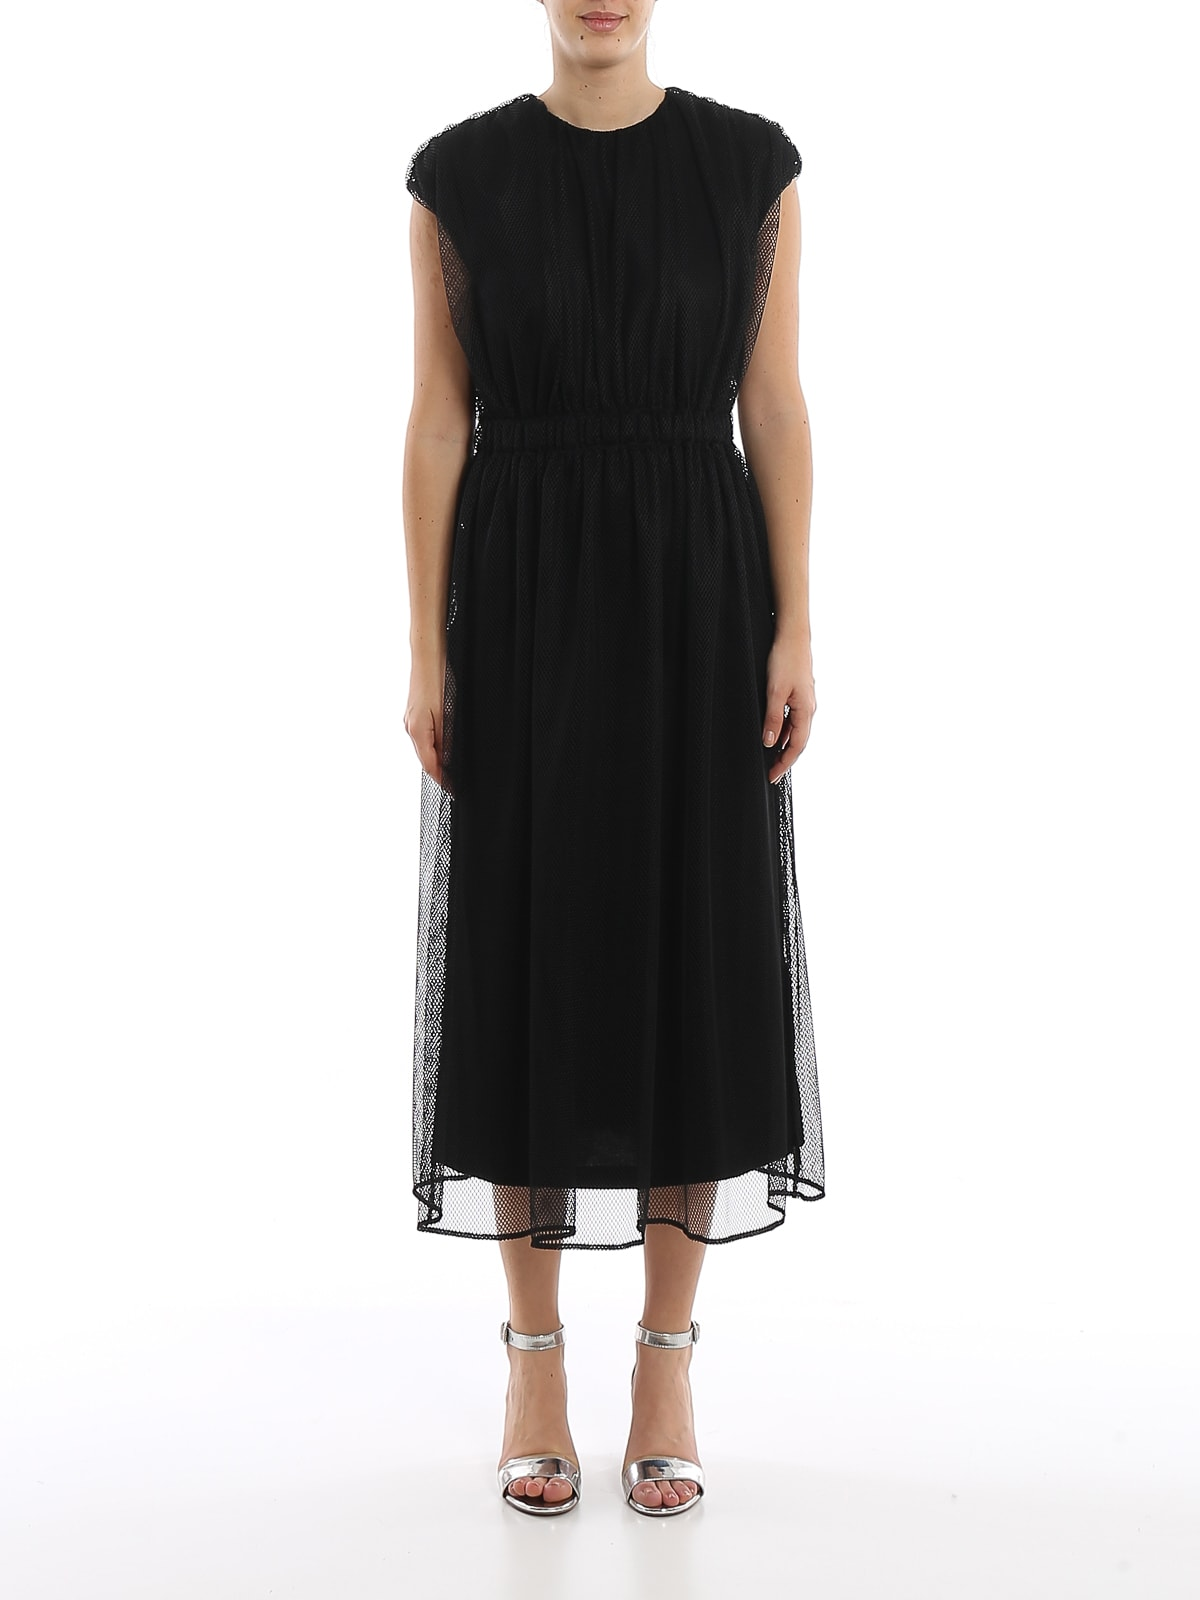 Buy Moncler - Dress online, shop Moncler with free shipping